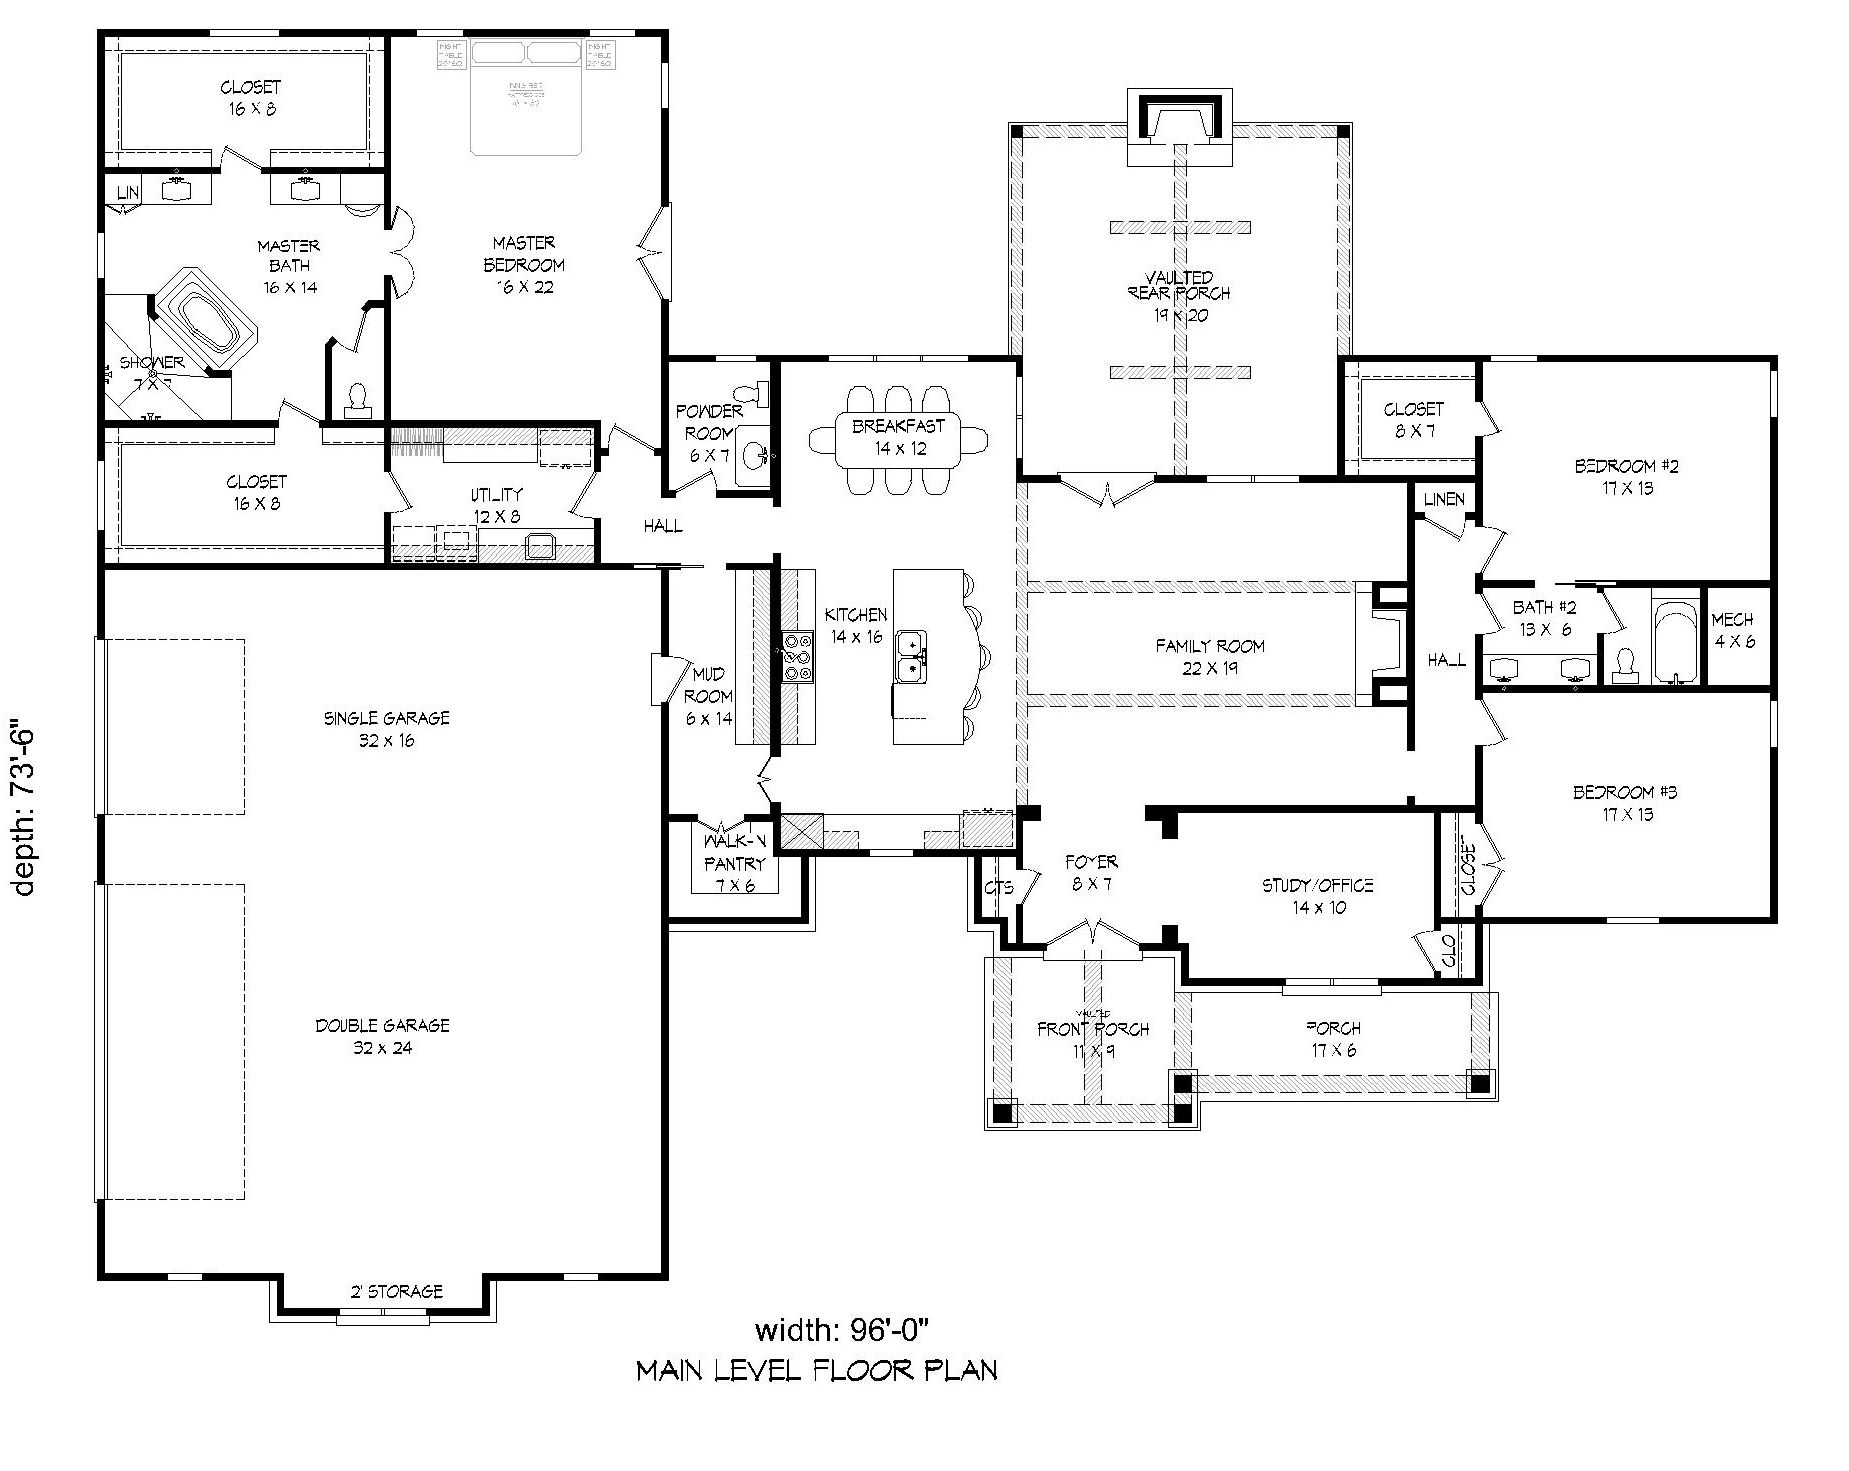 floor_plan_main_floor_image